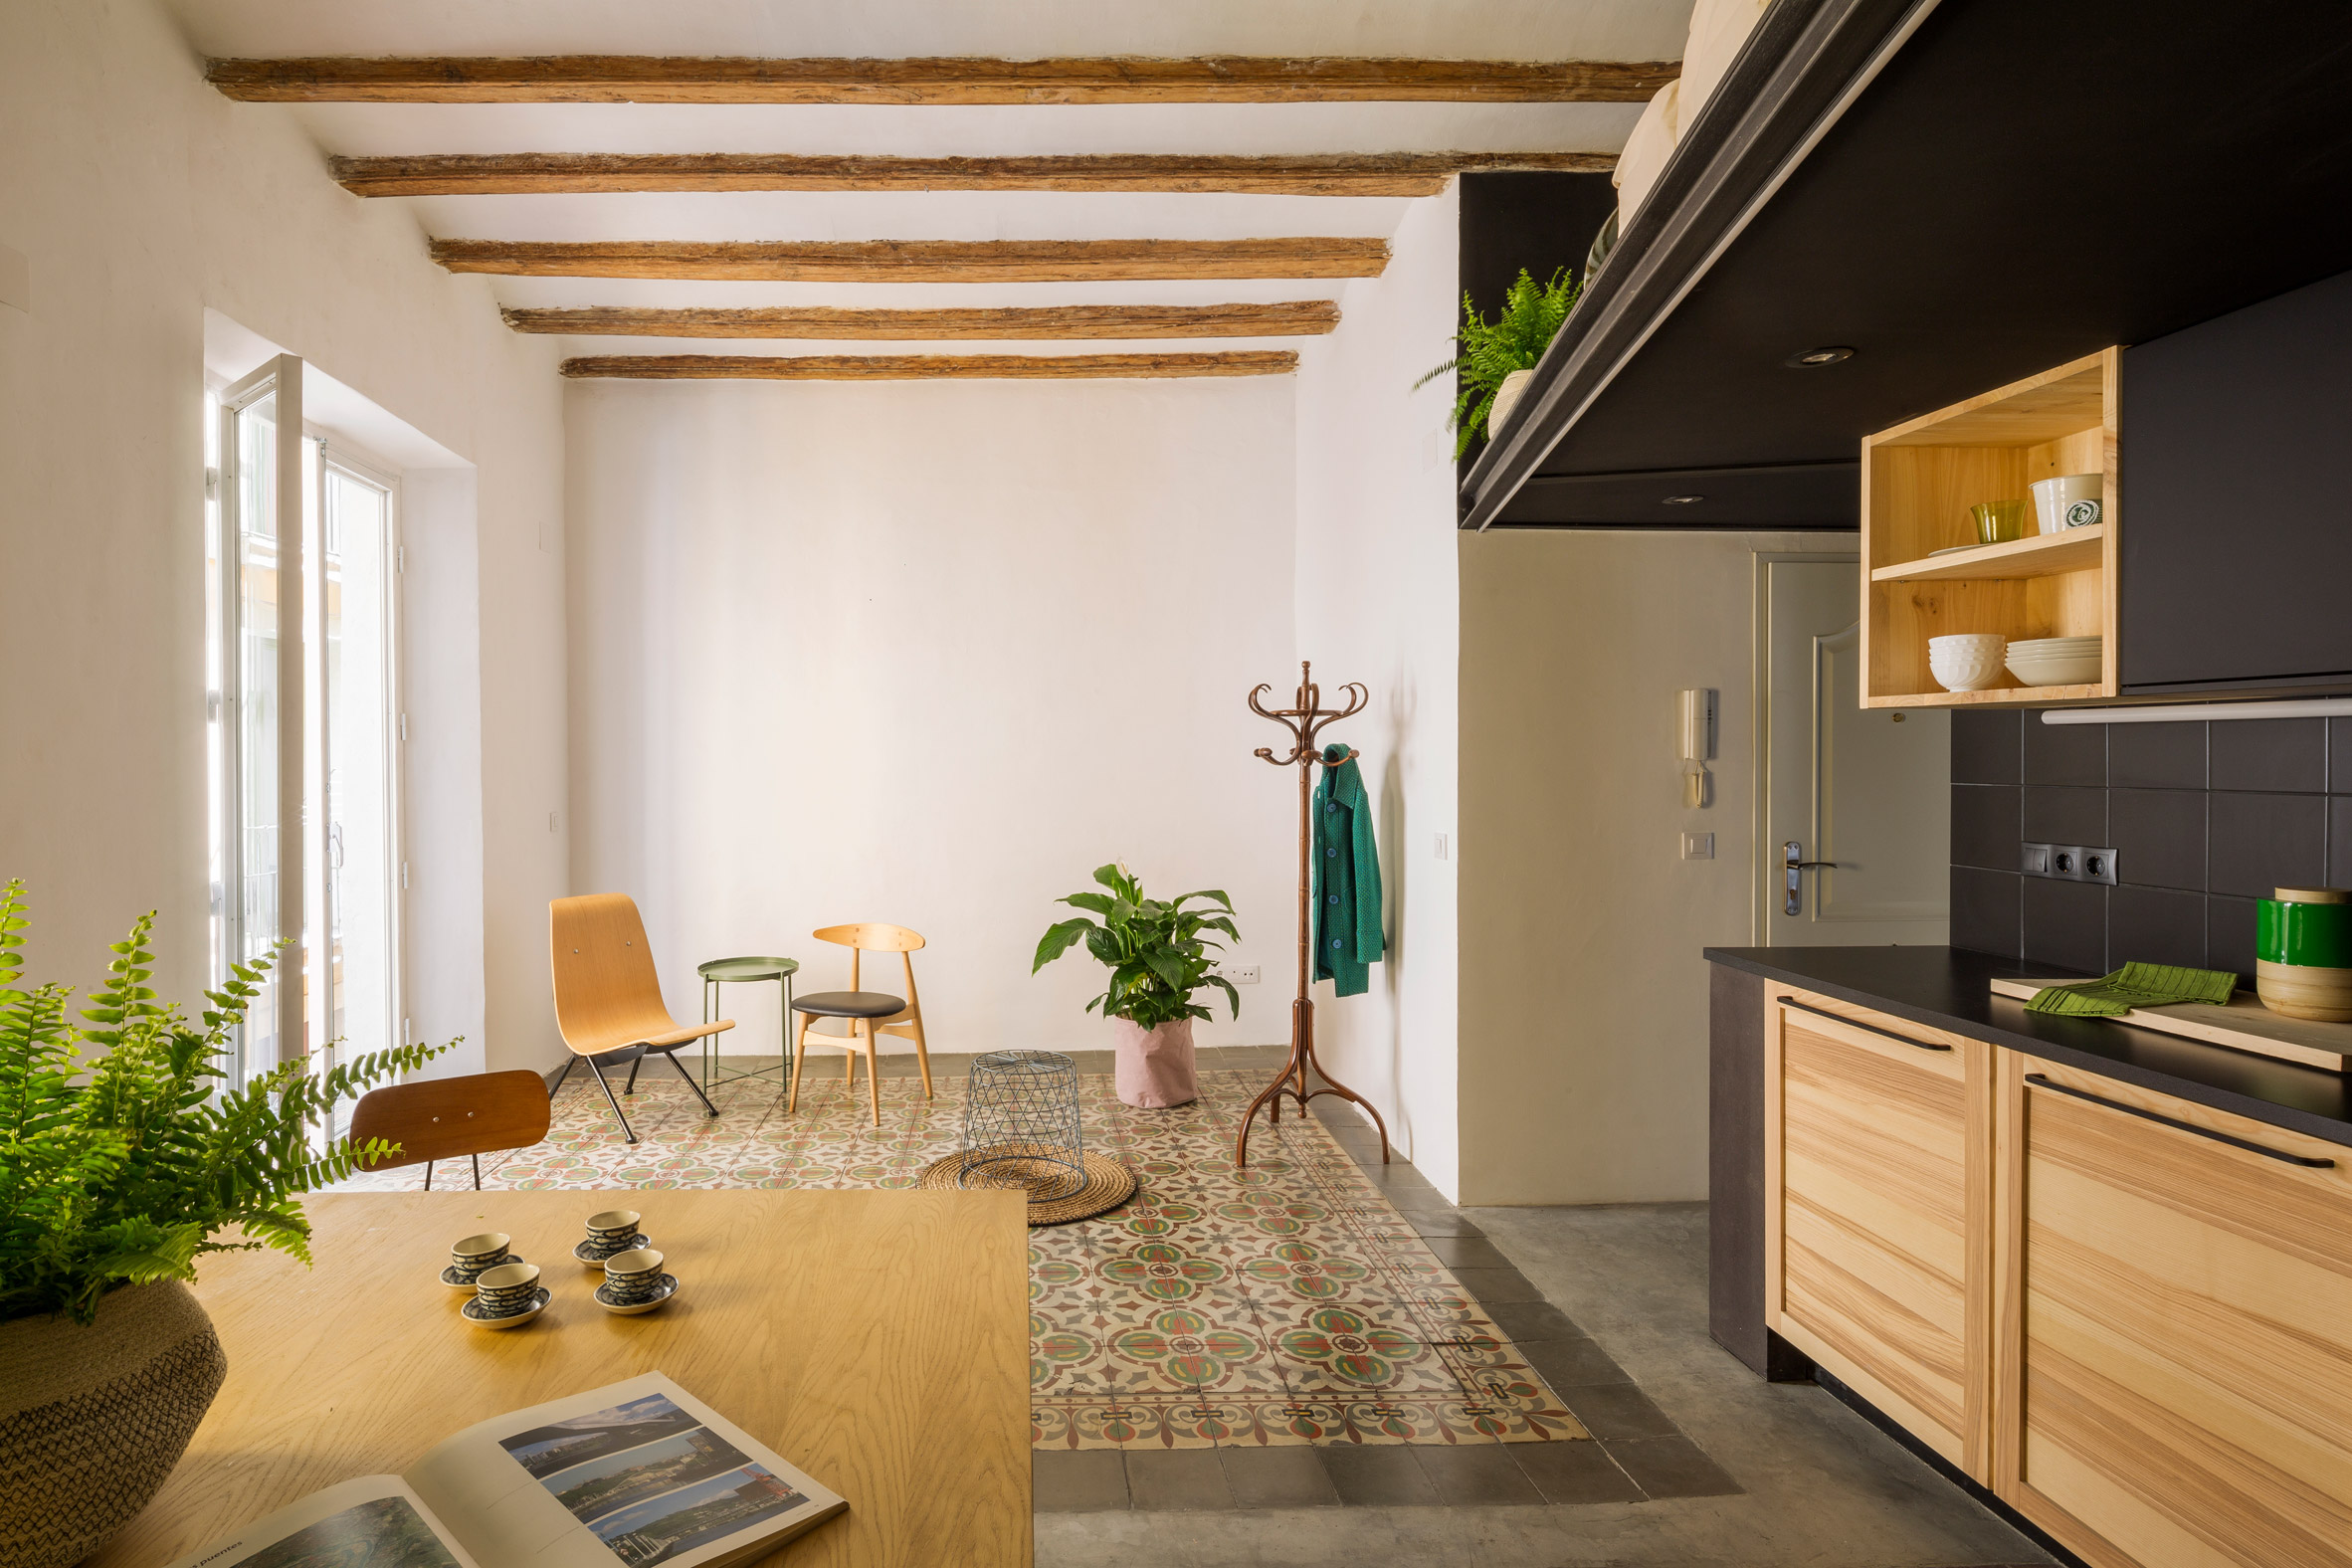 end-of-the-roc-nook-architects-interiors-apartments-spain-barcelona_dezeen_2364_col_2